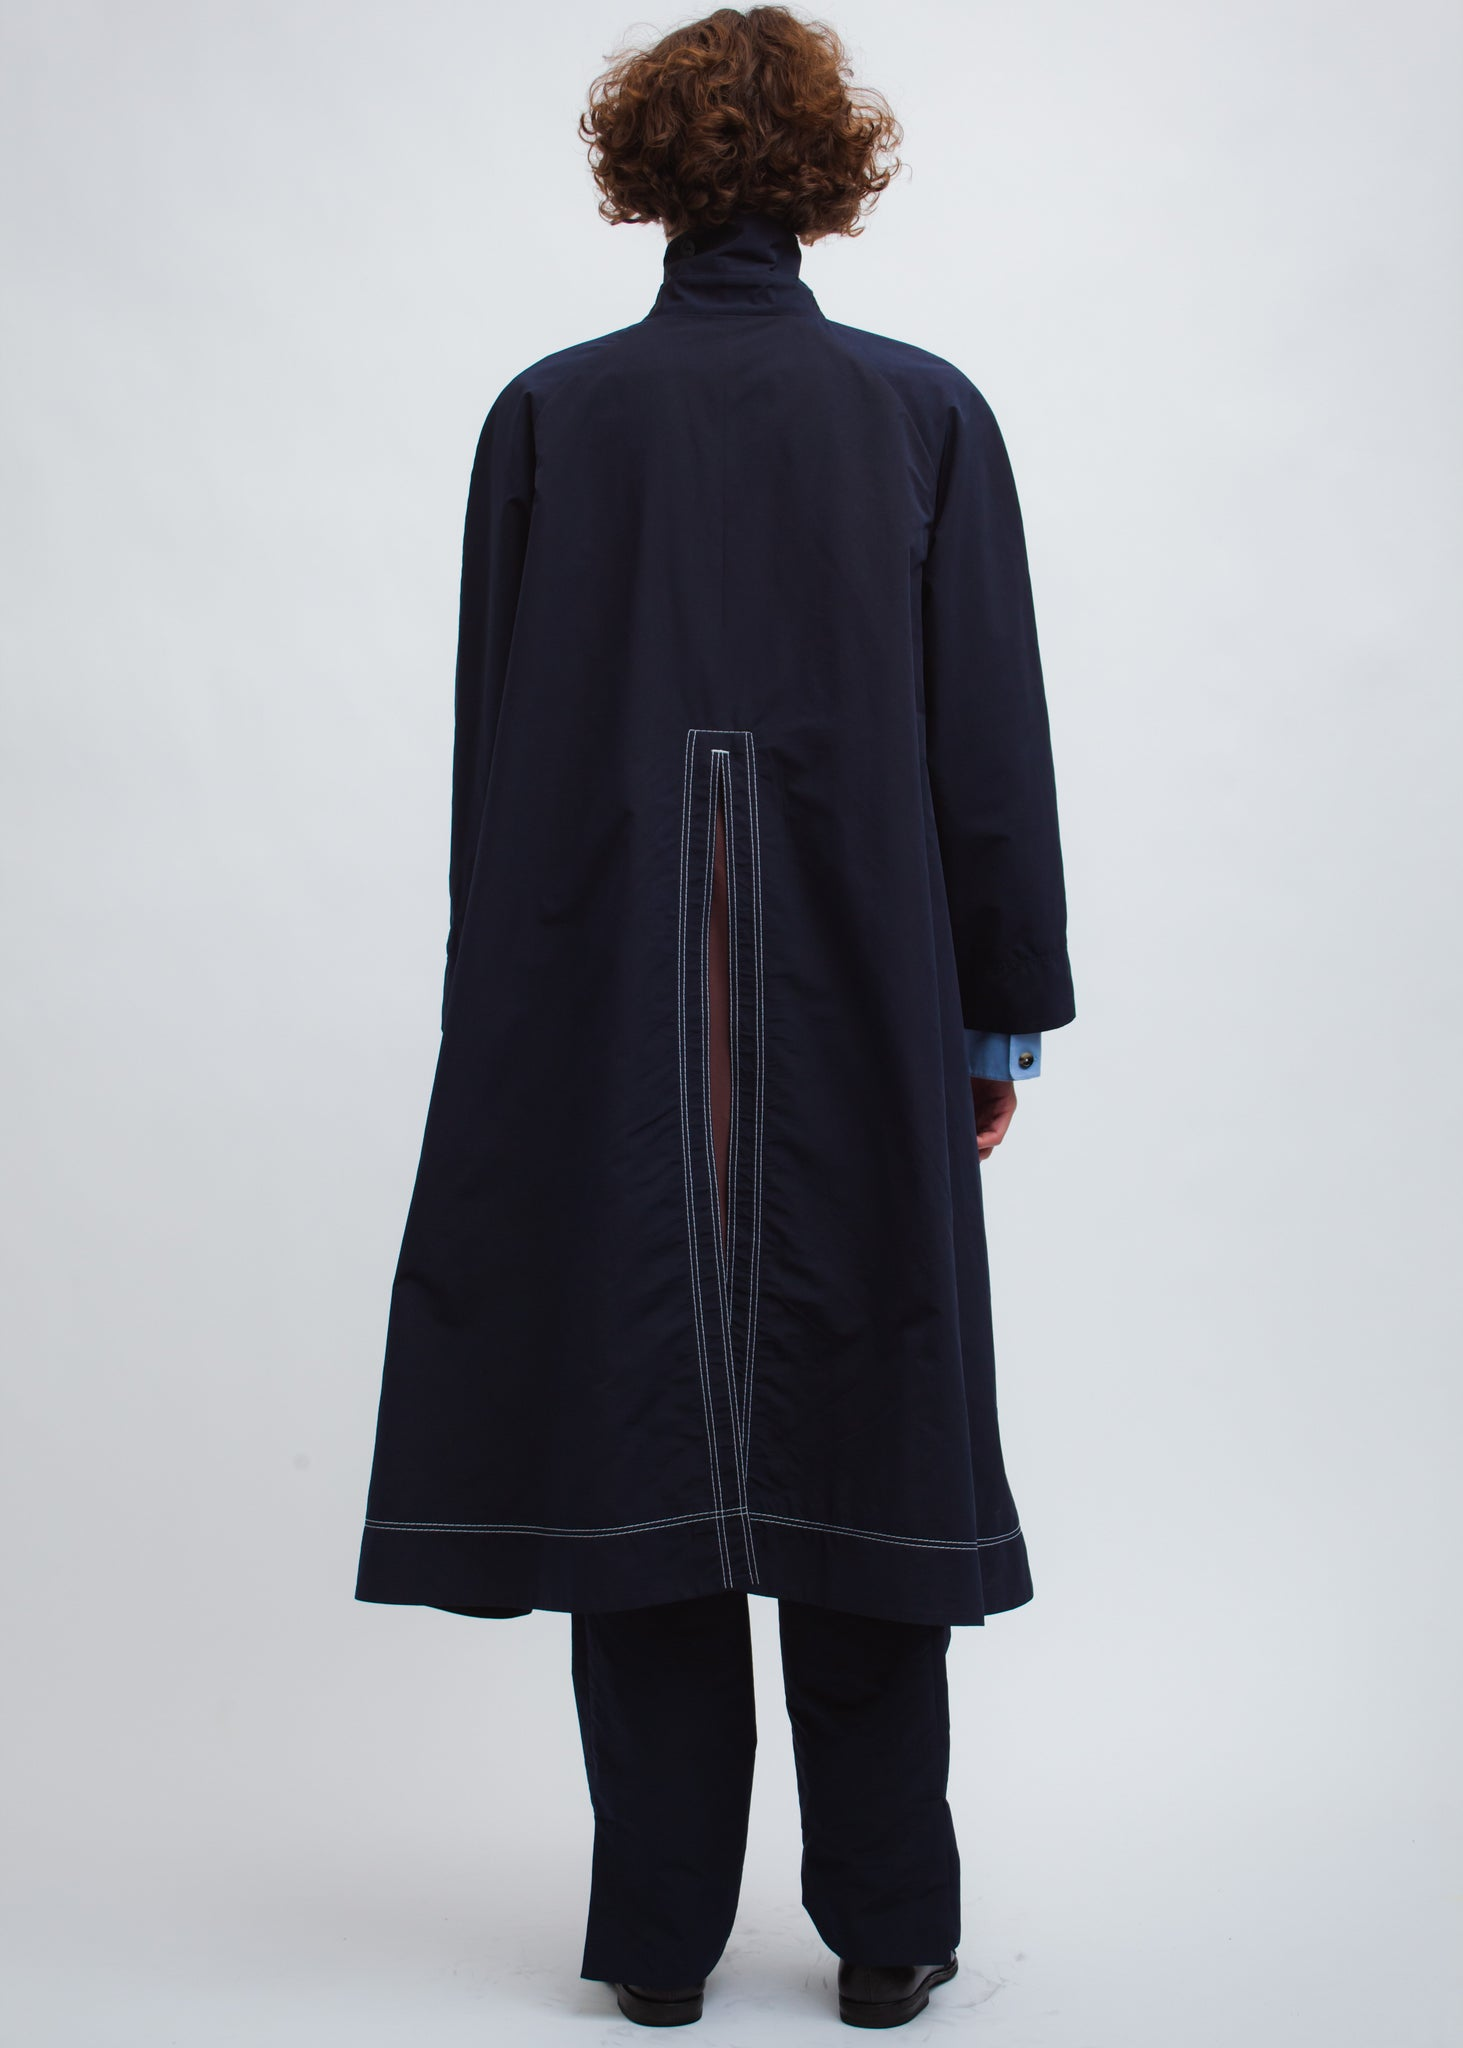 Omar Afridi Road Cover Coat (Navy with Bordeaux)